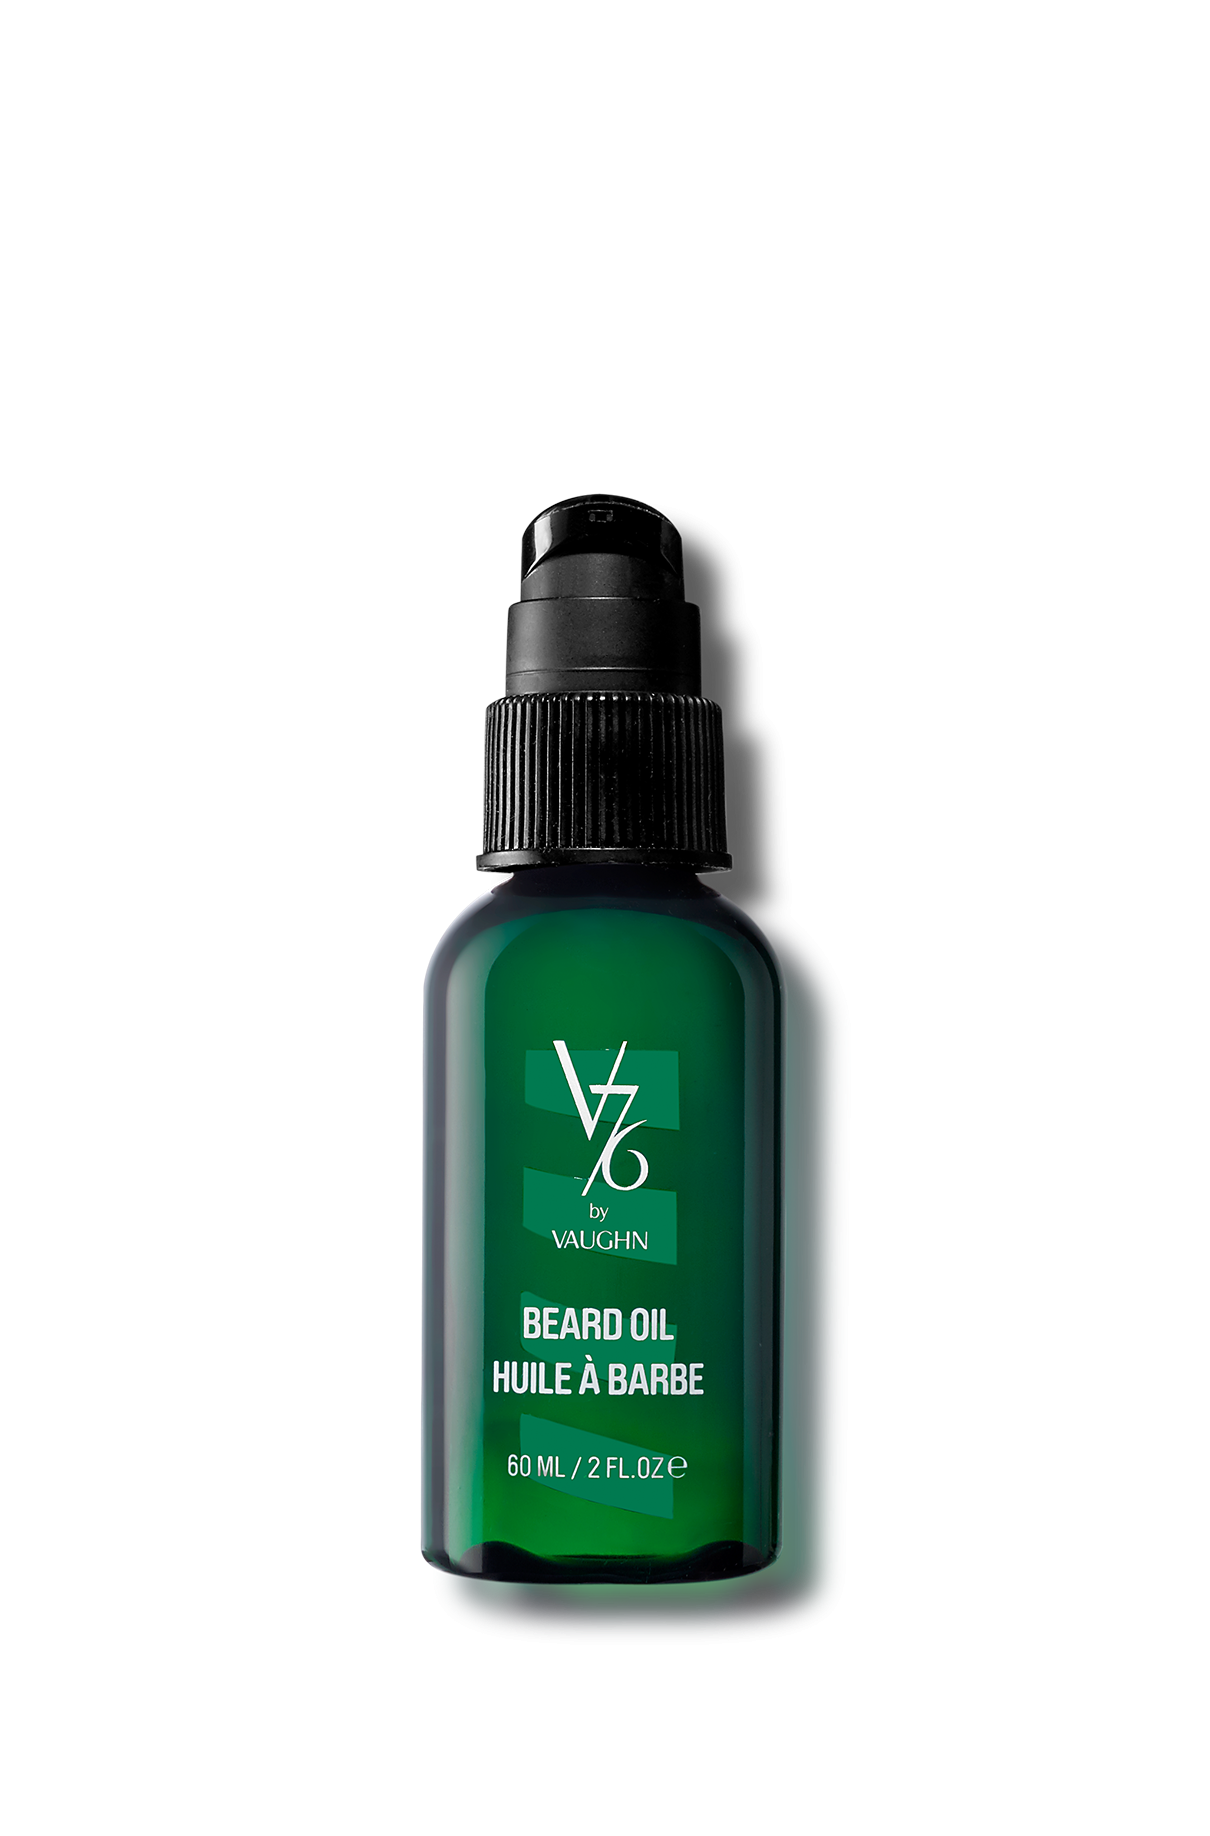 V76 by Vaugn  Beard Oil, 2 0z. $19.00